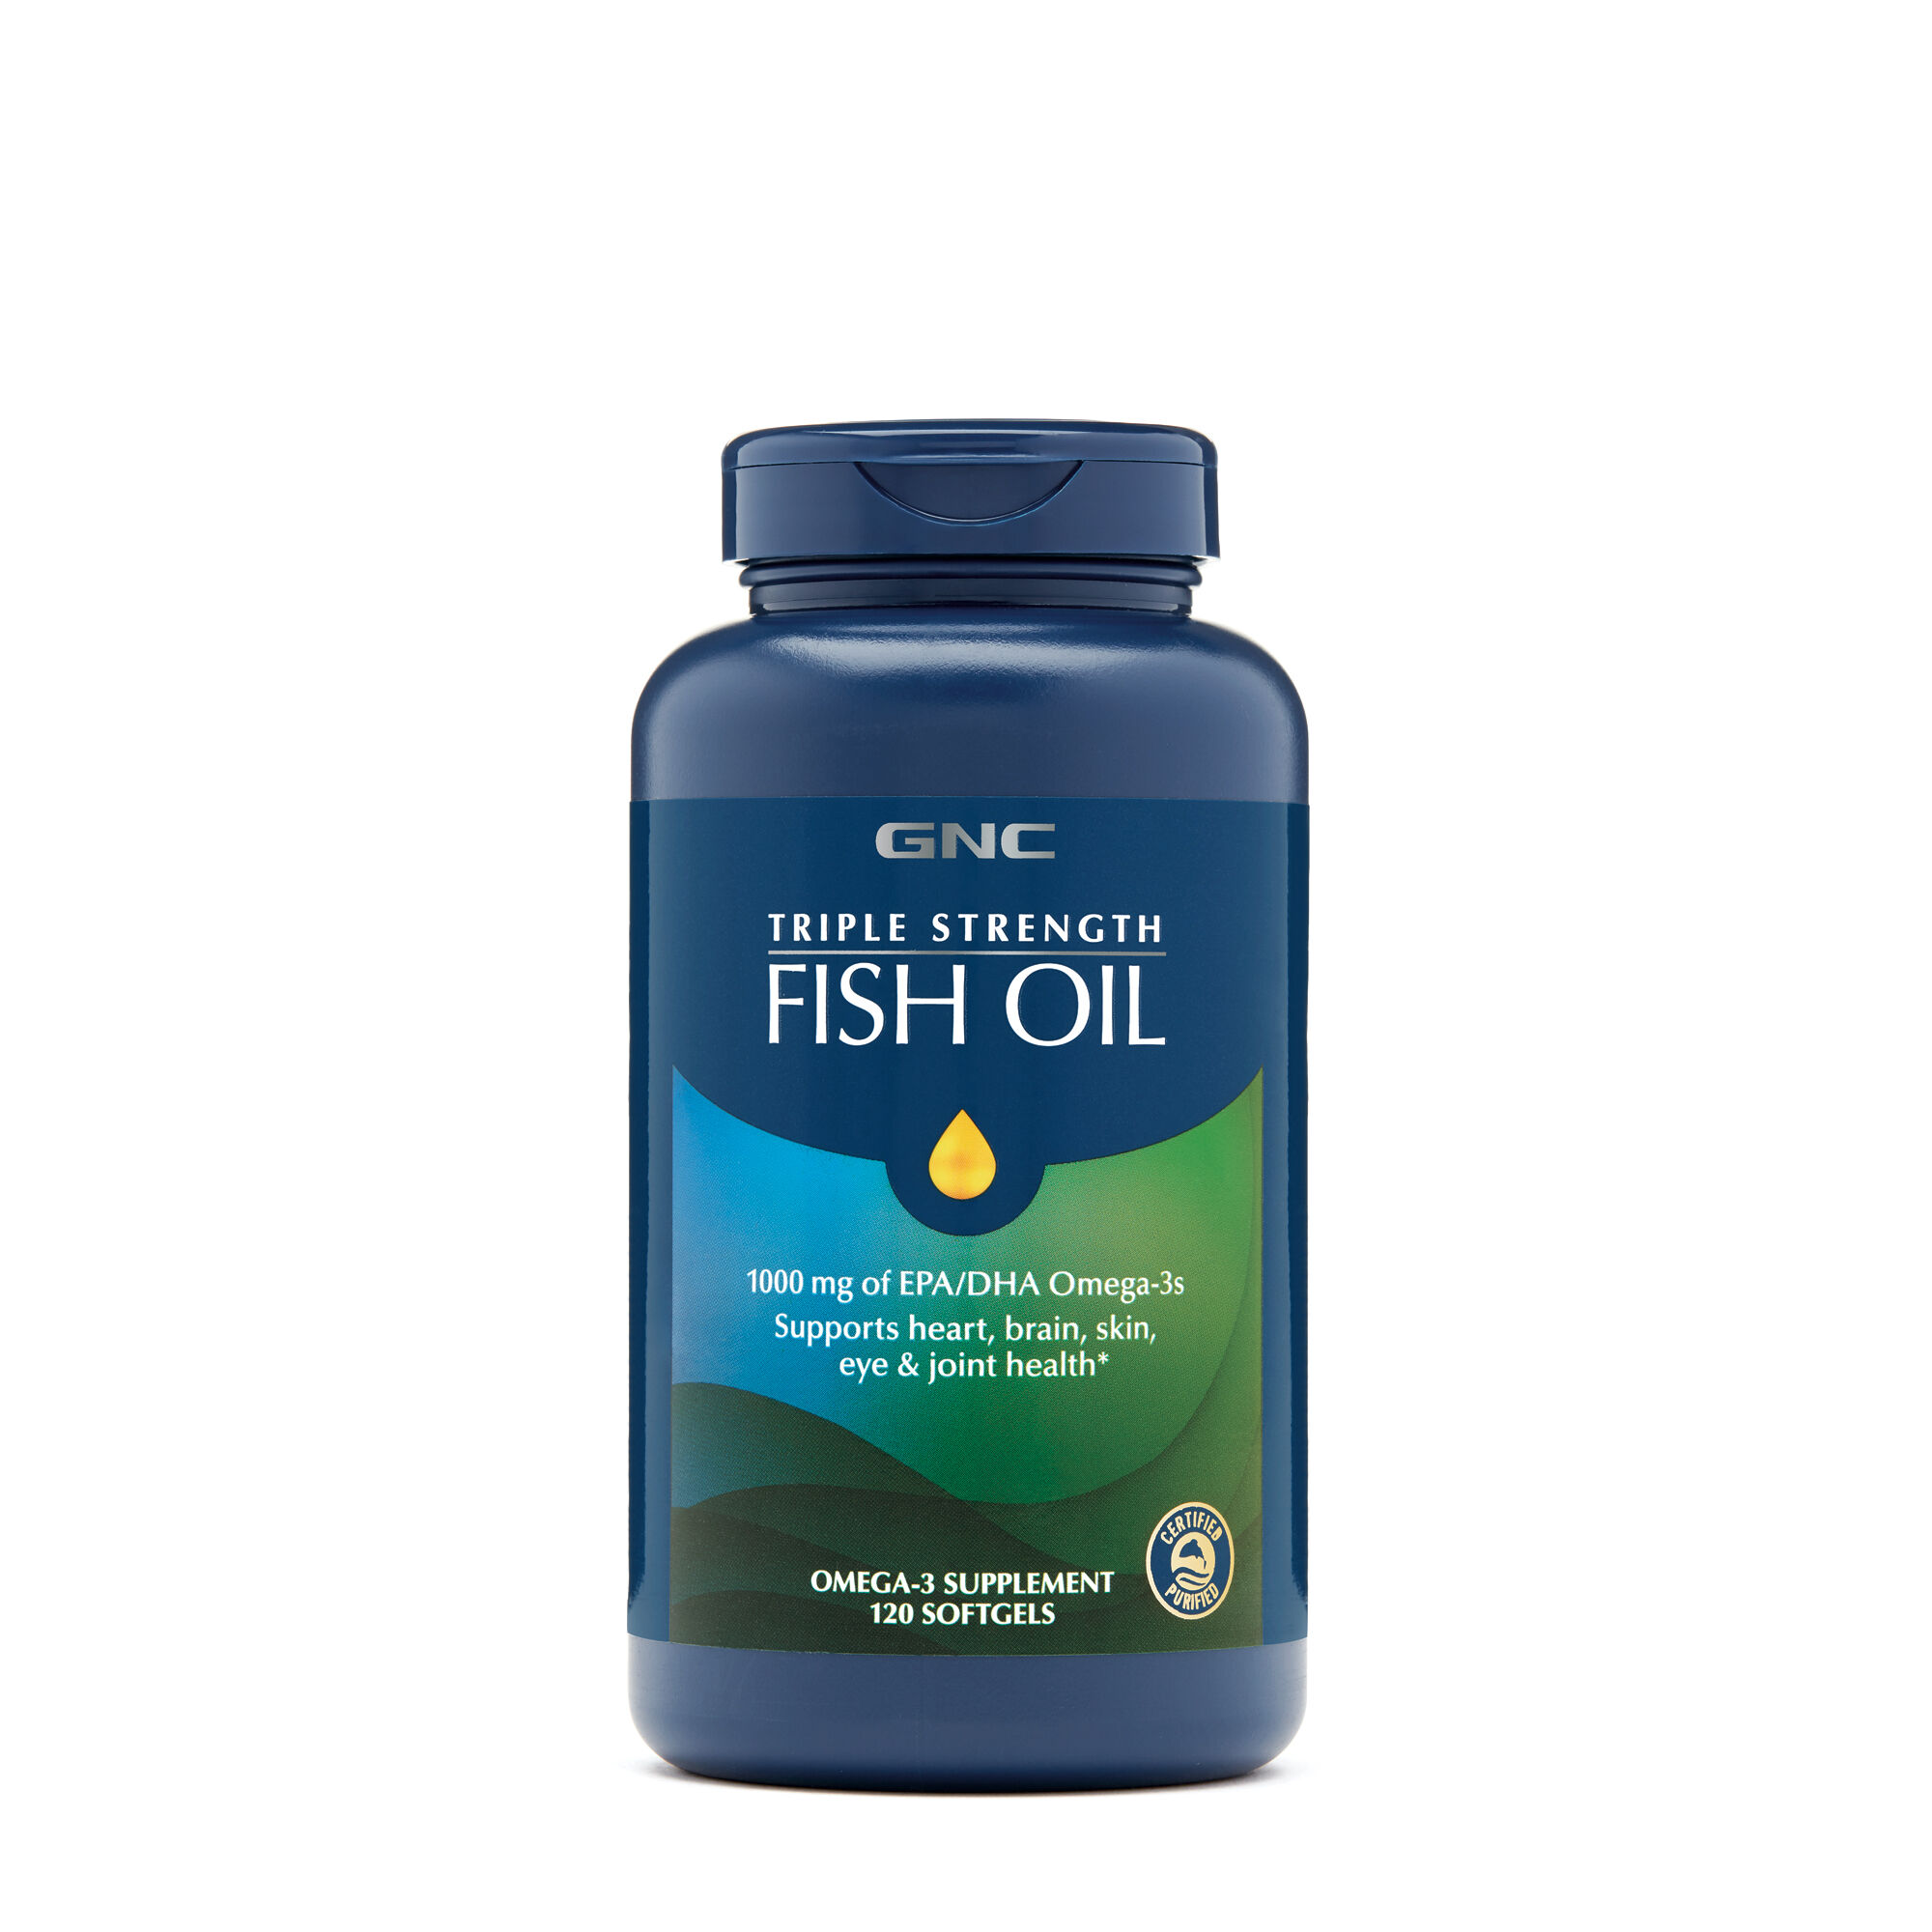 Vitamin store supplements nutrition chippewa falls for Fish oil pills